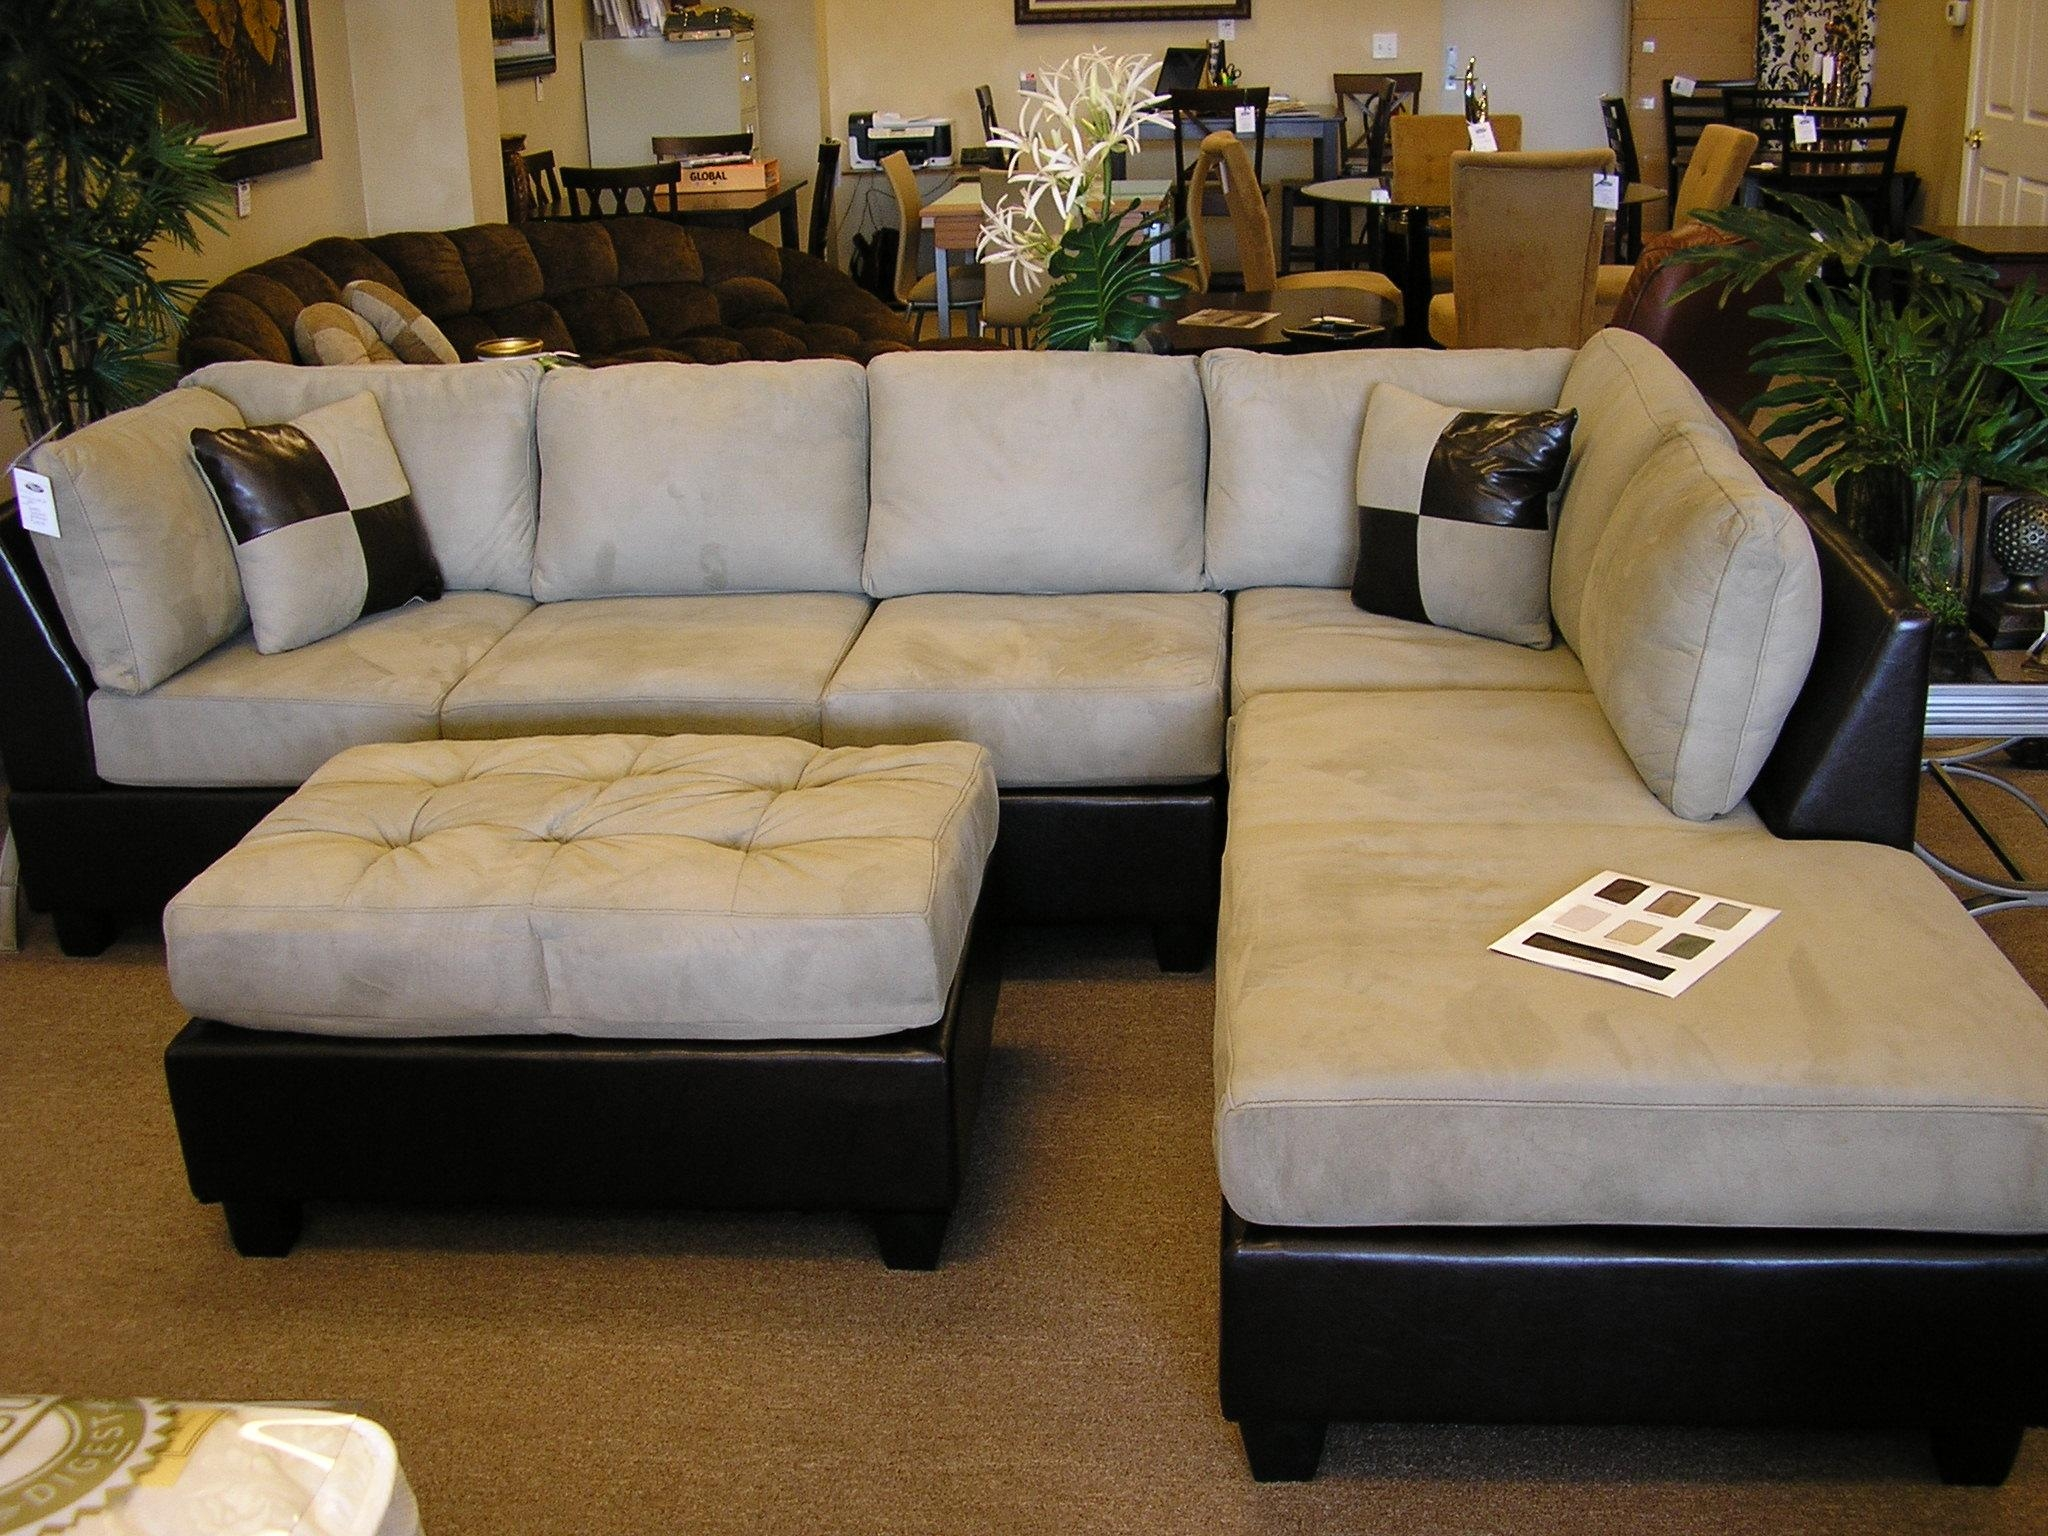 Furniture Sectional Sofas With Chaise Lounge Under 500 Cheap Pertaining To Sectional With Ottoman And Chaise (Image 7 of 20)